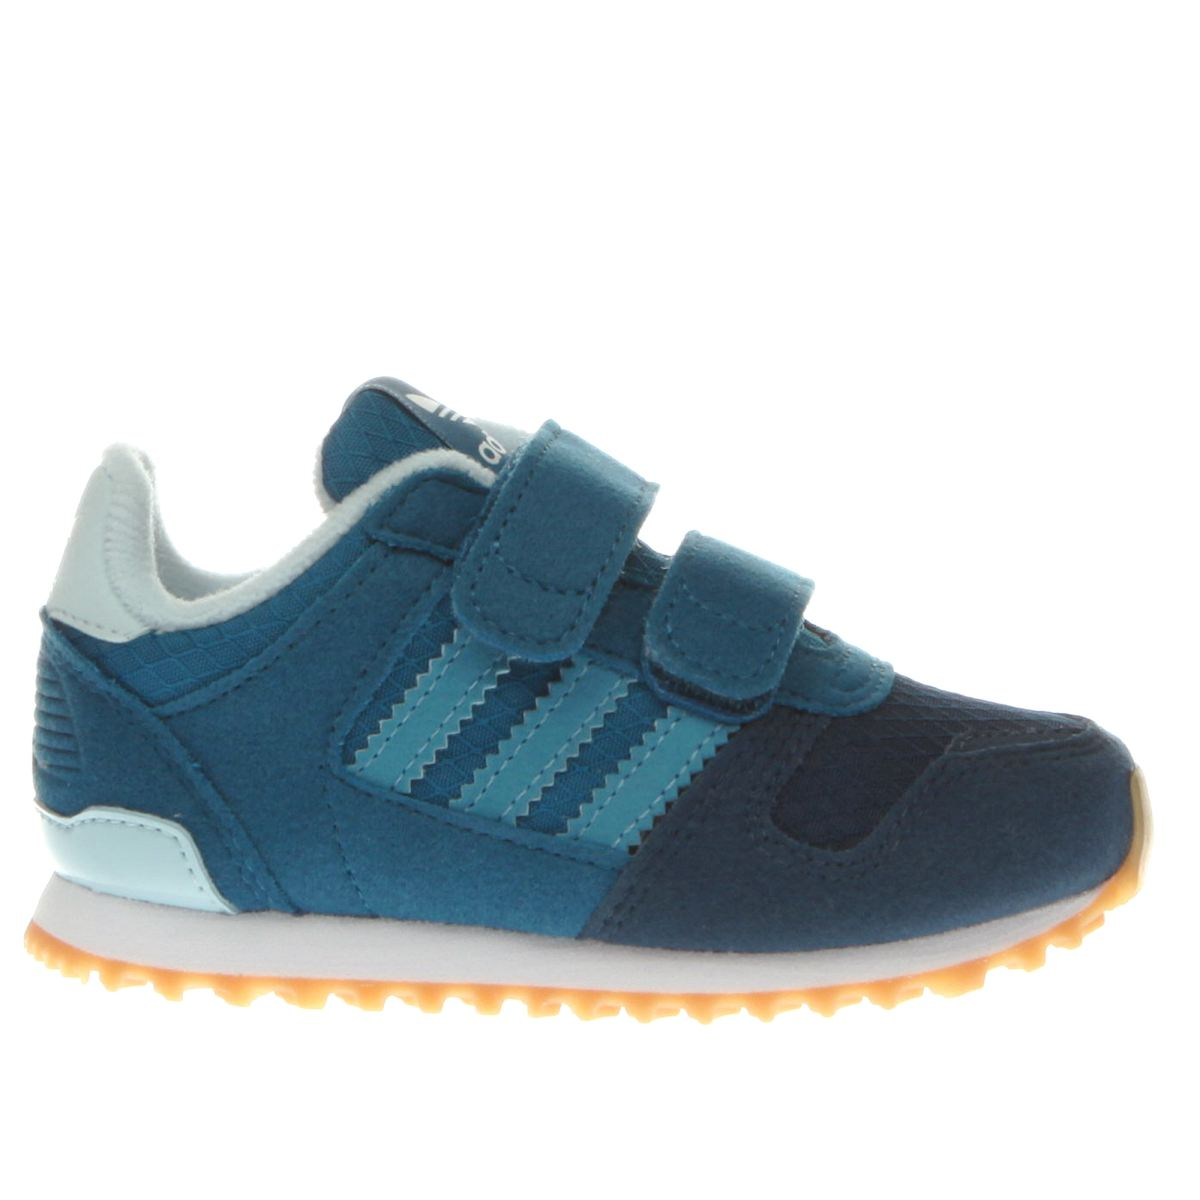 adidas blue zx 700 Boys Toddler Trainers